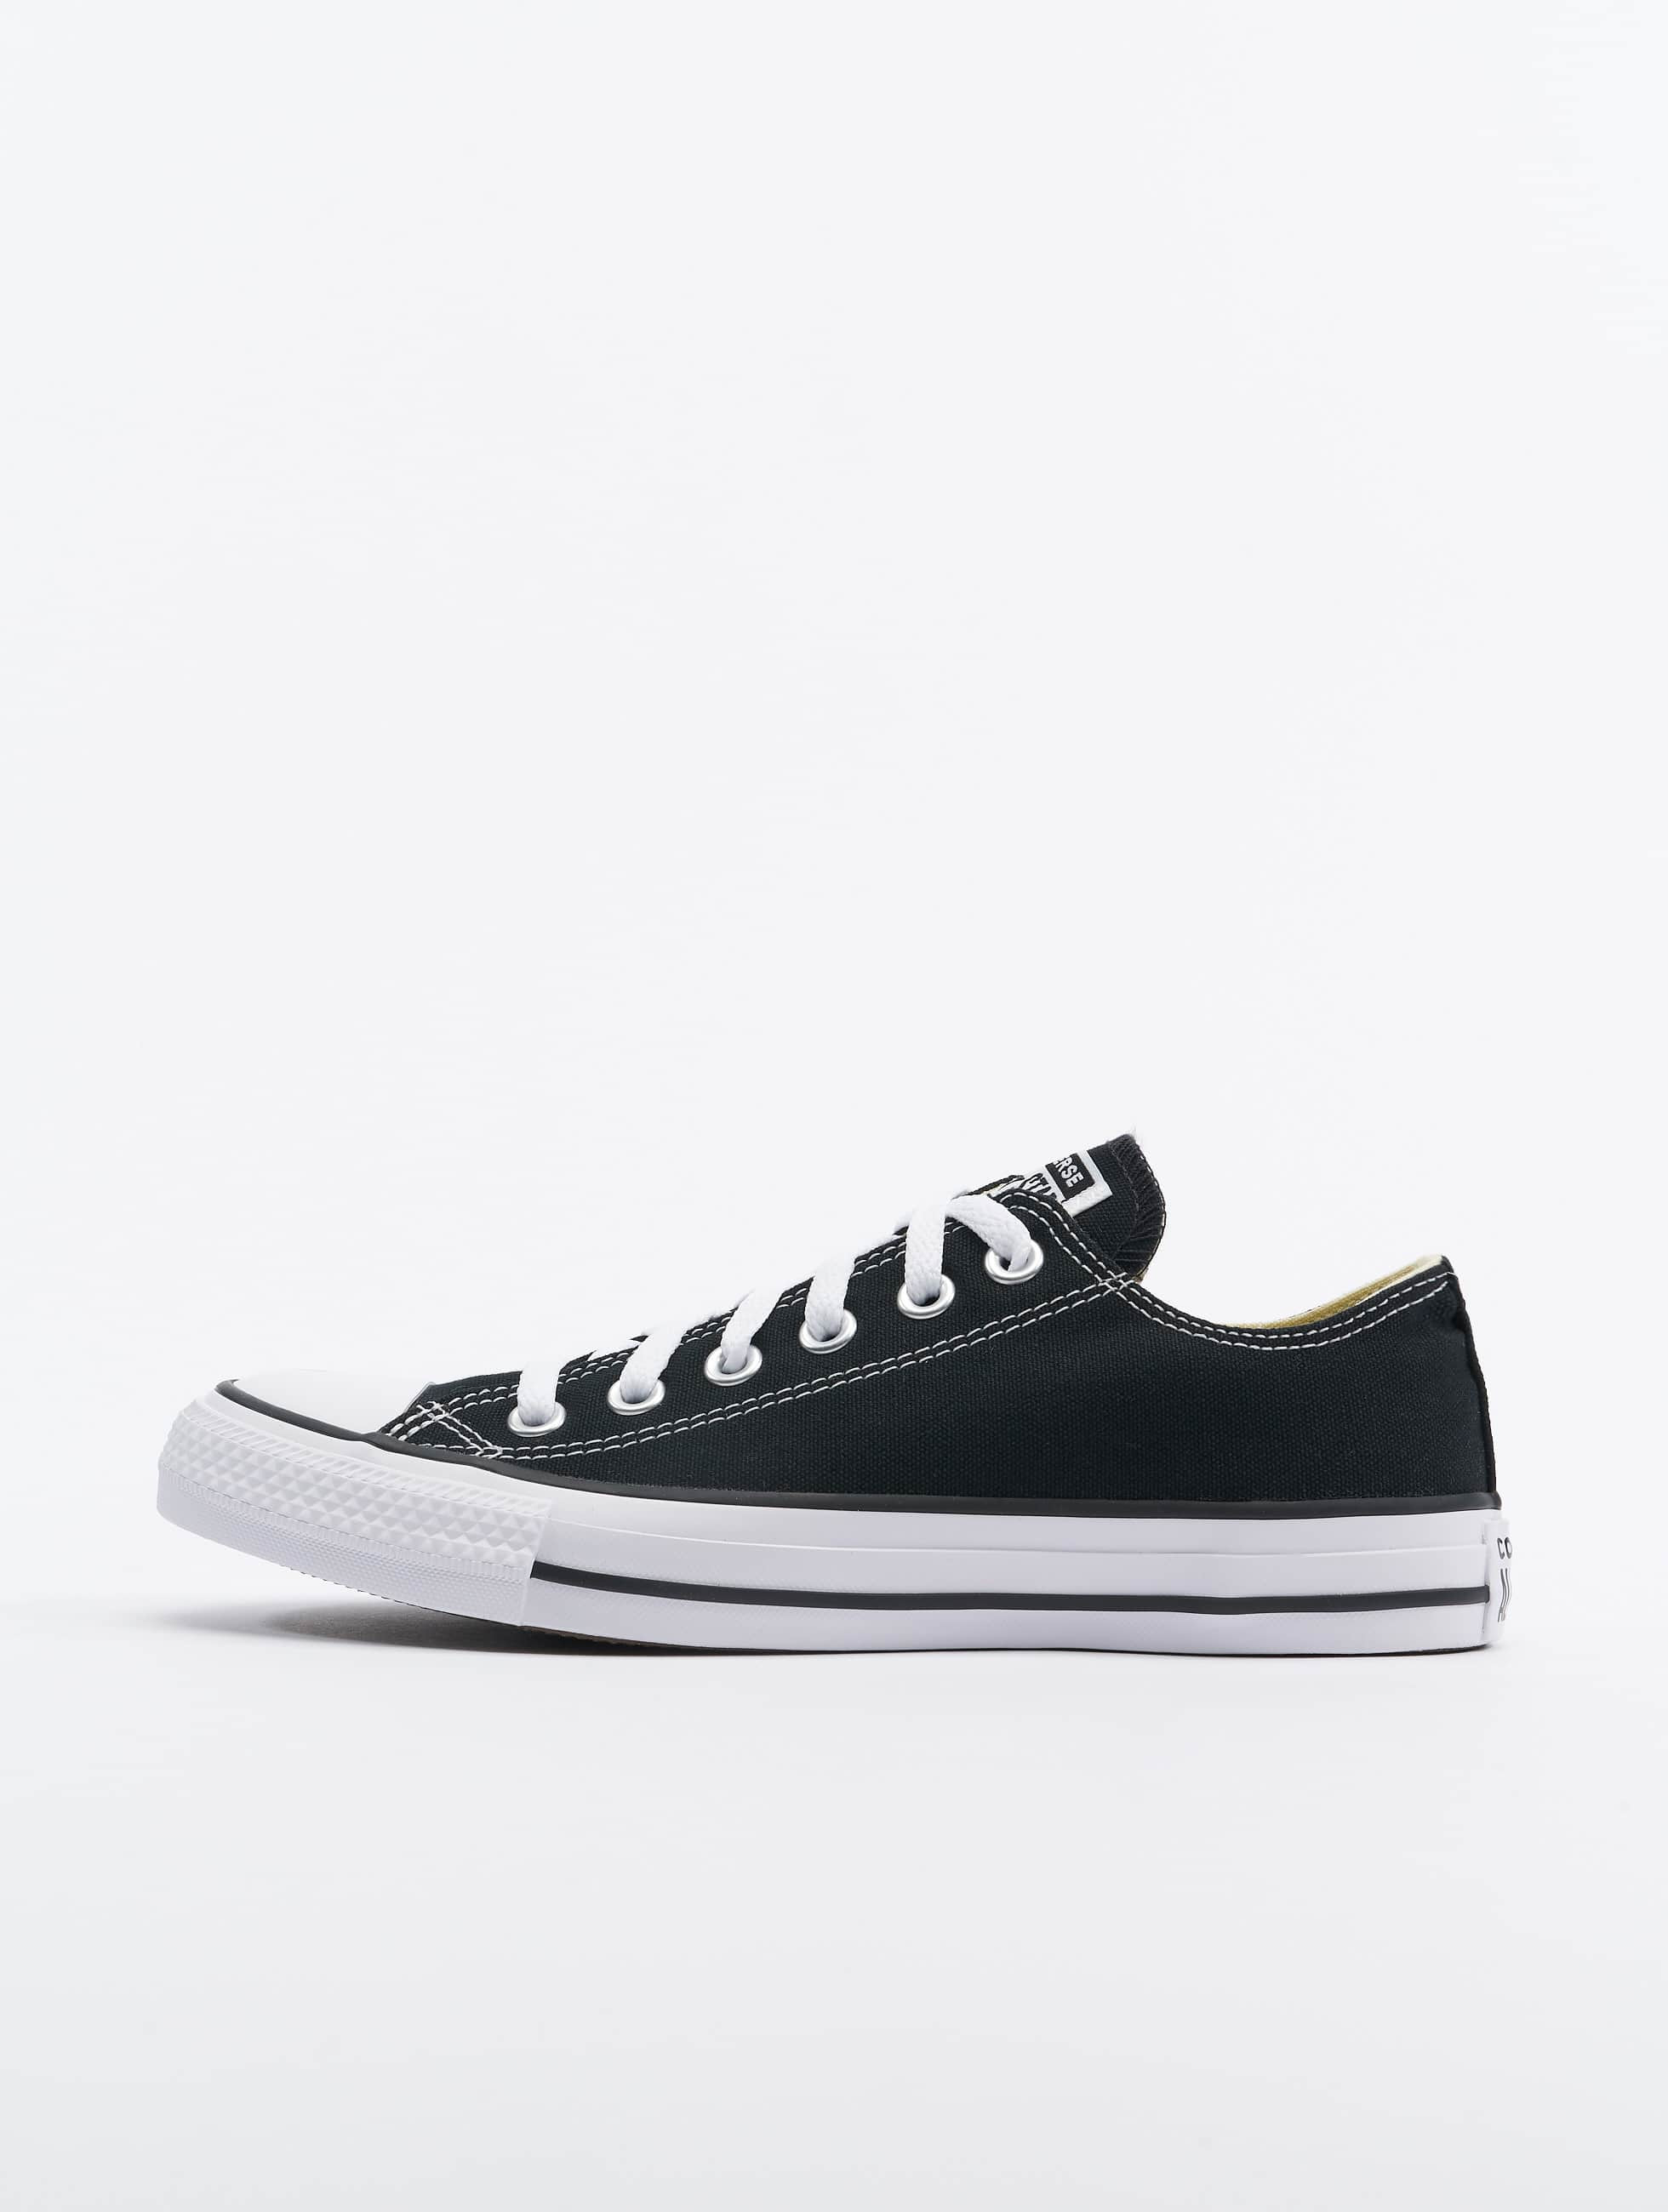 Sneaker All Star Ox Canvas Chucks in schwarz